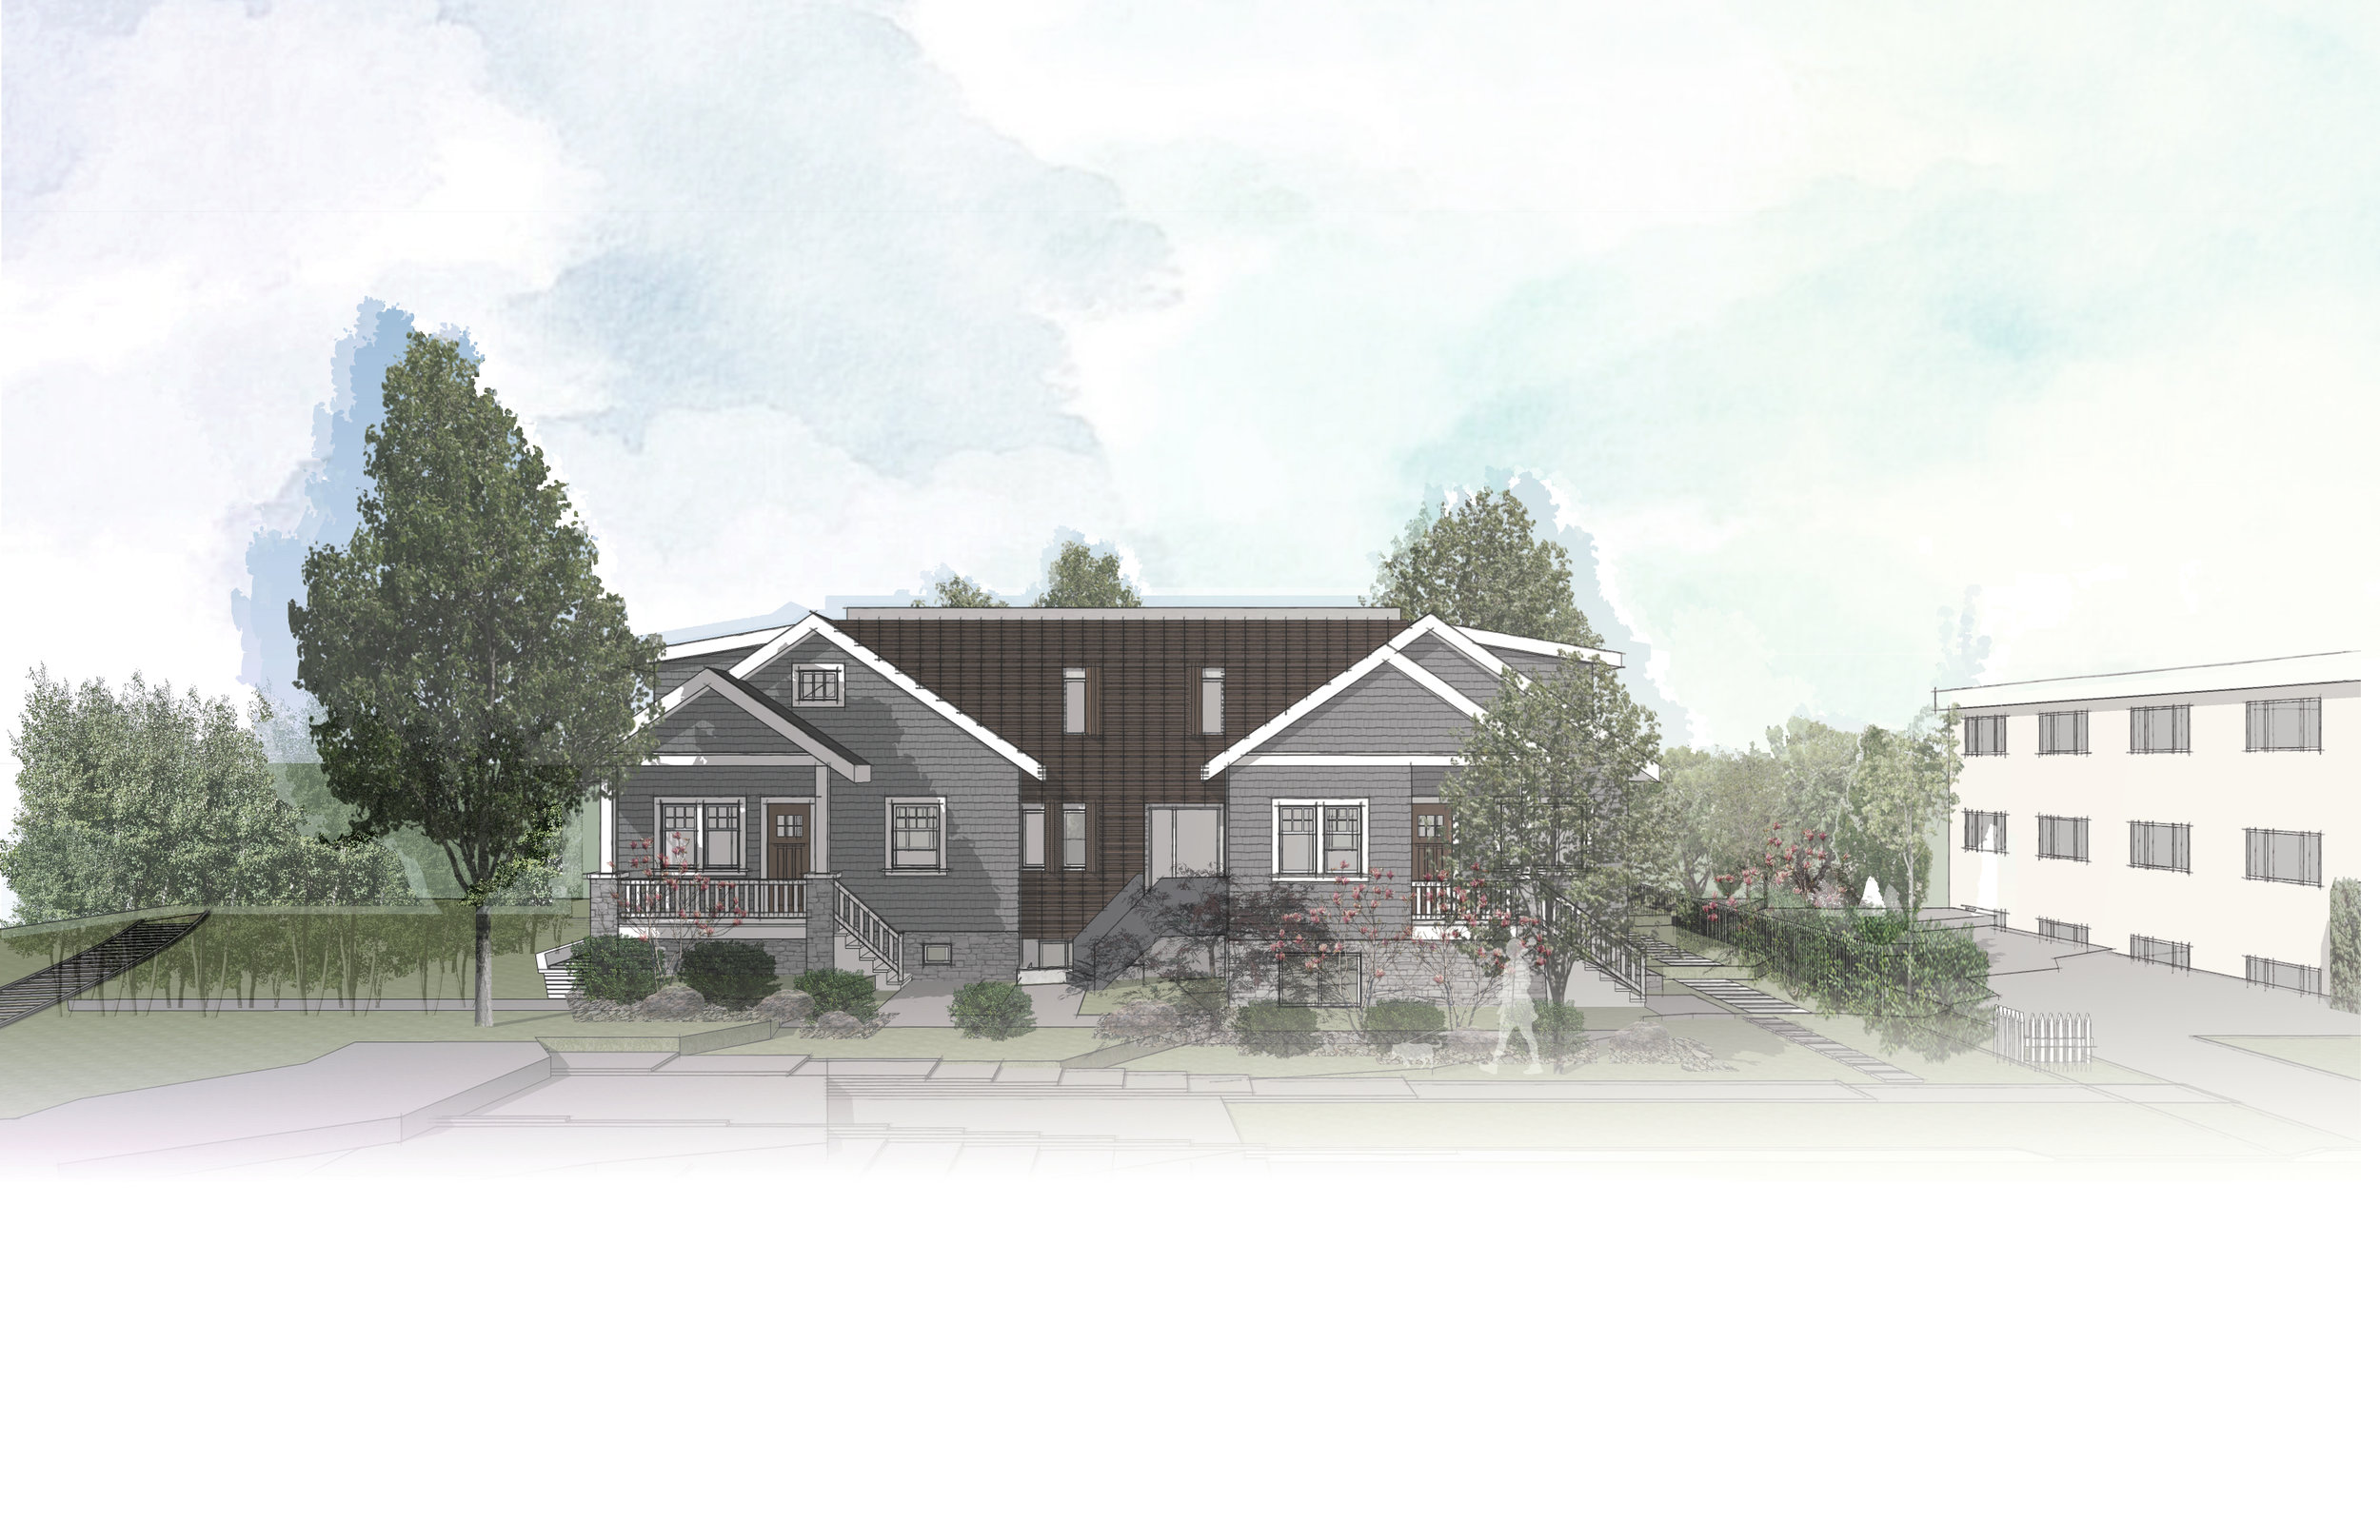 160602 front elevation picture final.jpg